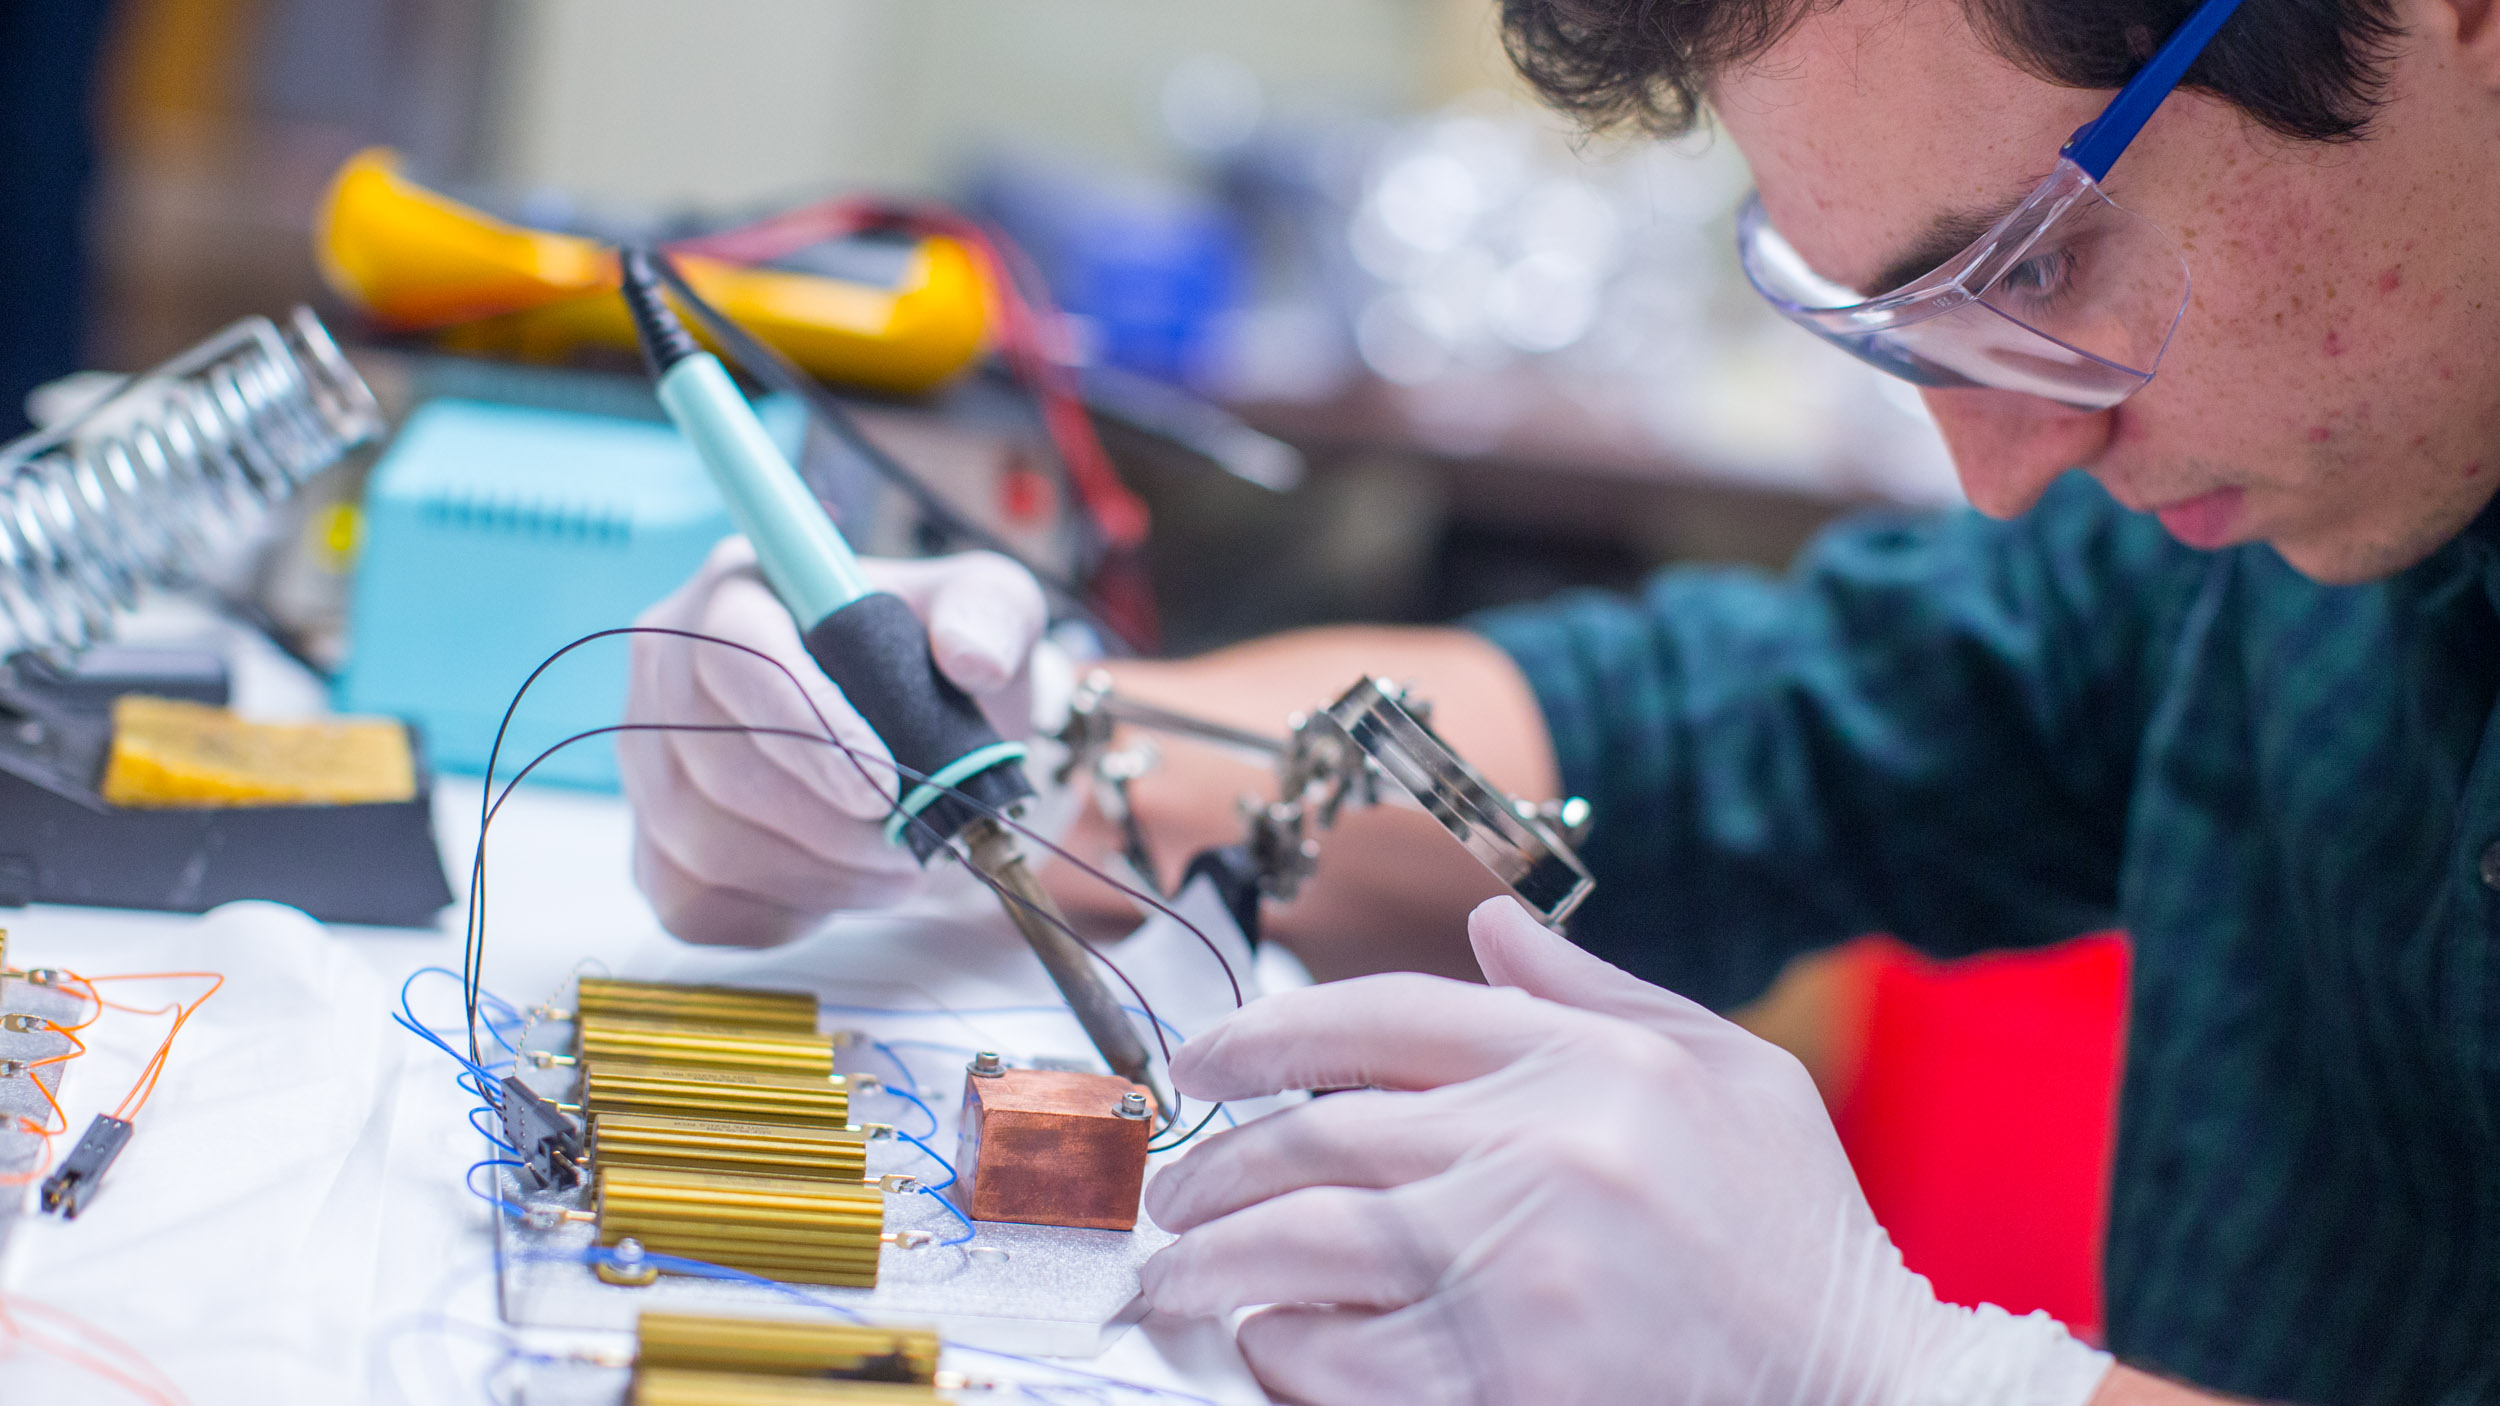 Recent UVA graduate and now lab technician Matthew Hall assembles electronic circuitry for APOGEE's thermal warm-up system.